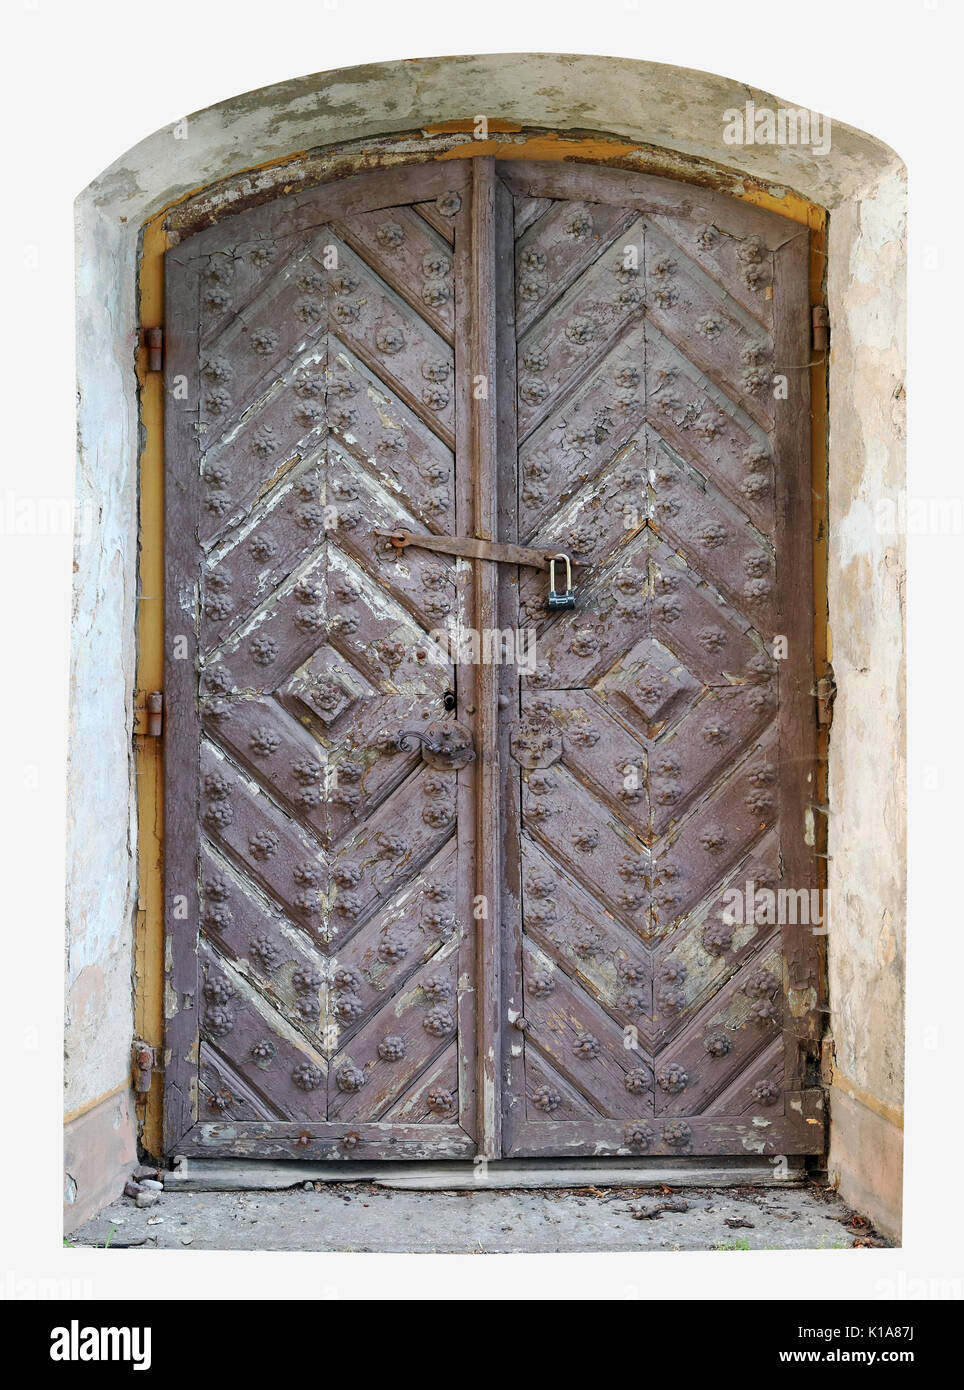 Locked rotten door to the dungeon of a medieval ruined castle concept. Isolated on white & Castle Dungeon Door Stock Photos \u0026 Castle Dungeon Door Stock Images ...